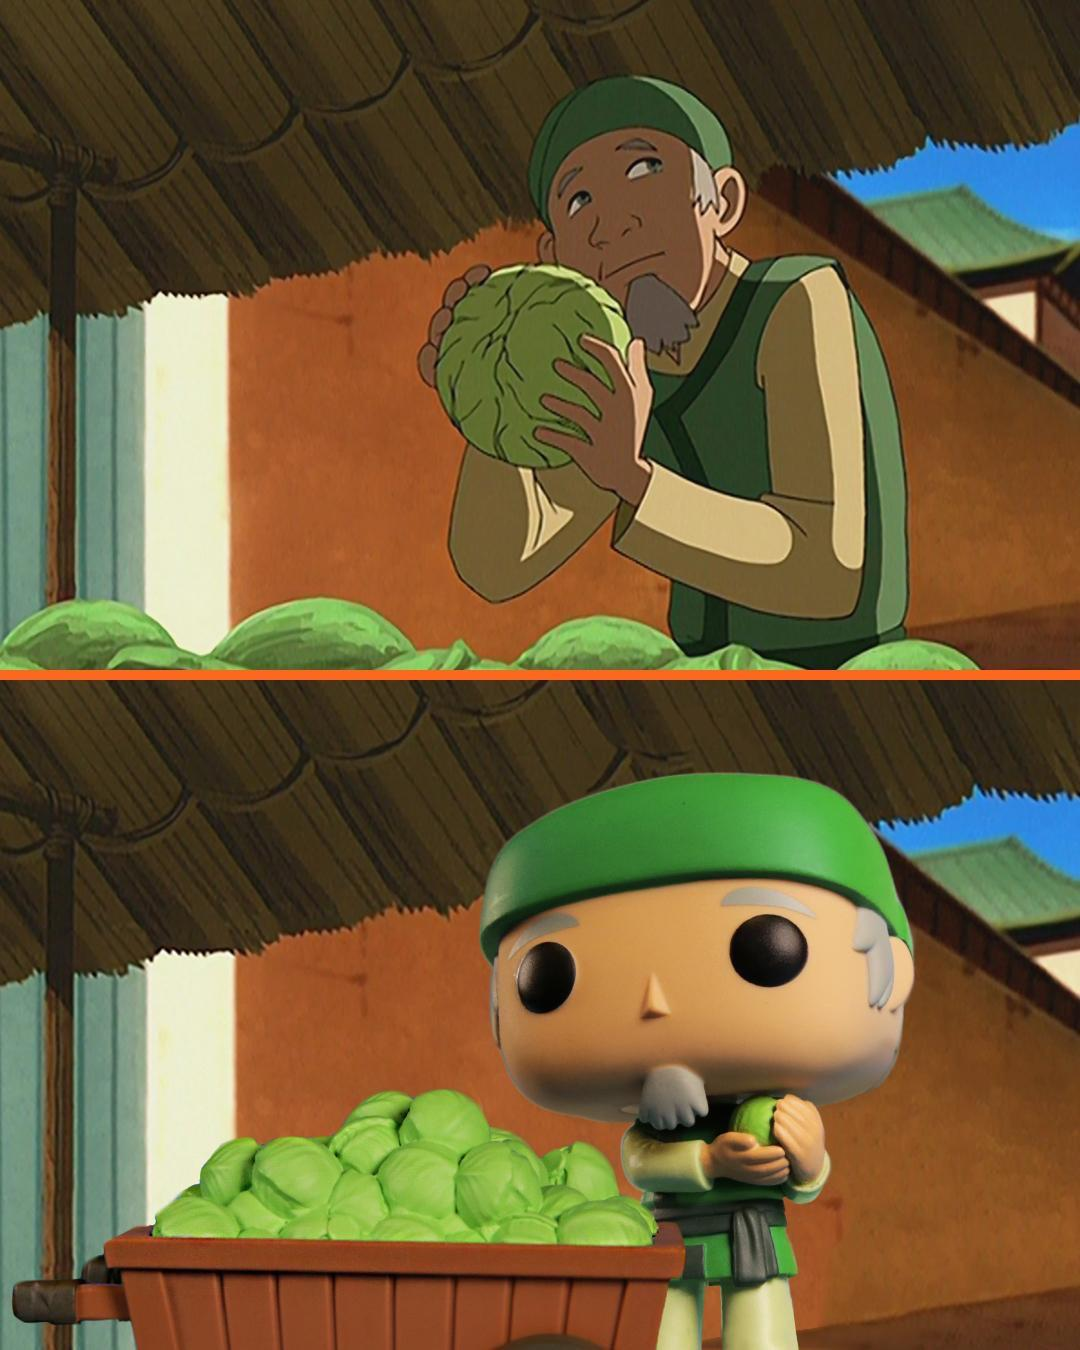 Shop Cabbage Man Funko Pop - Free 2-day Shipping w/ Prime                                         Ad                                                                                                                 Viewing ads is privacy protected by DuckDuckGo. Ad clicks are managed by Microsoft's ad network (more info).